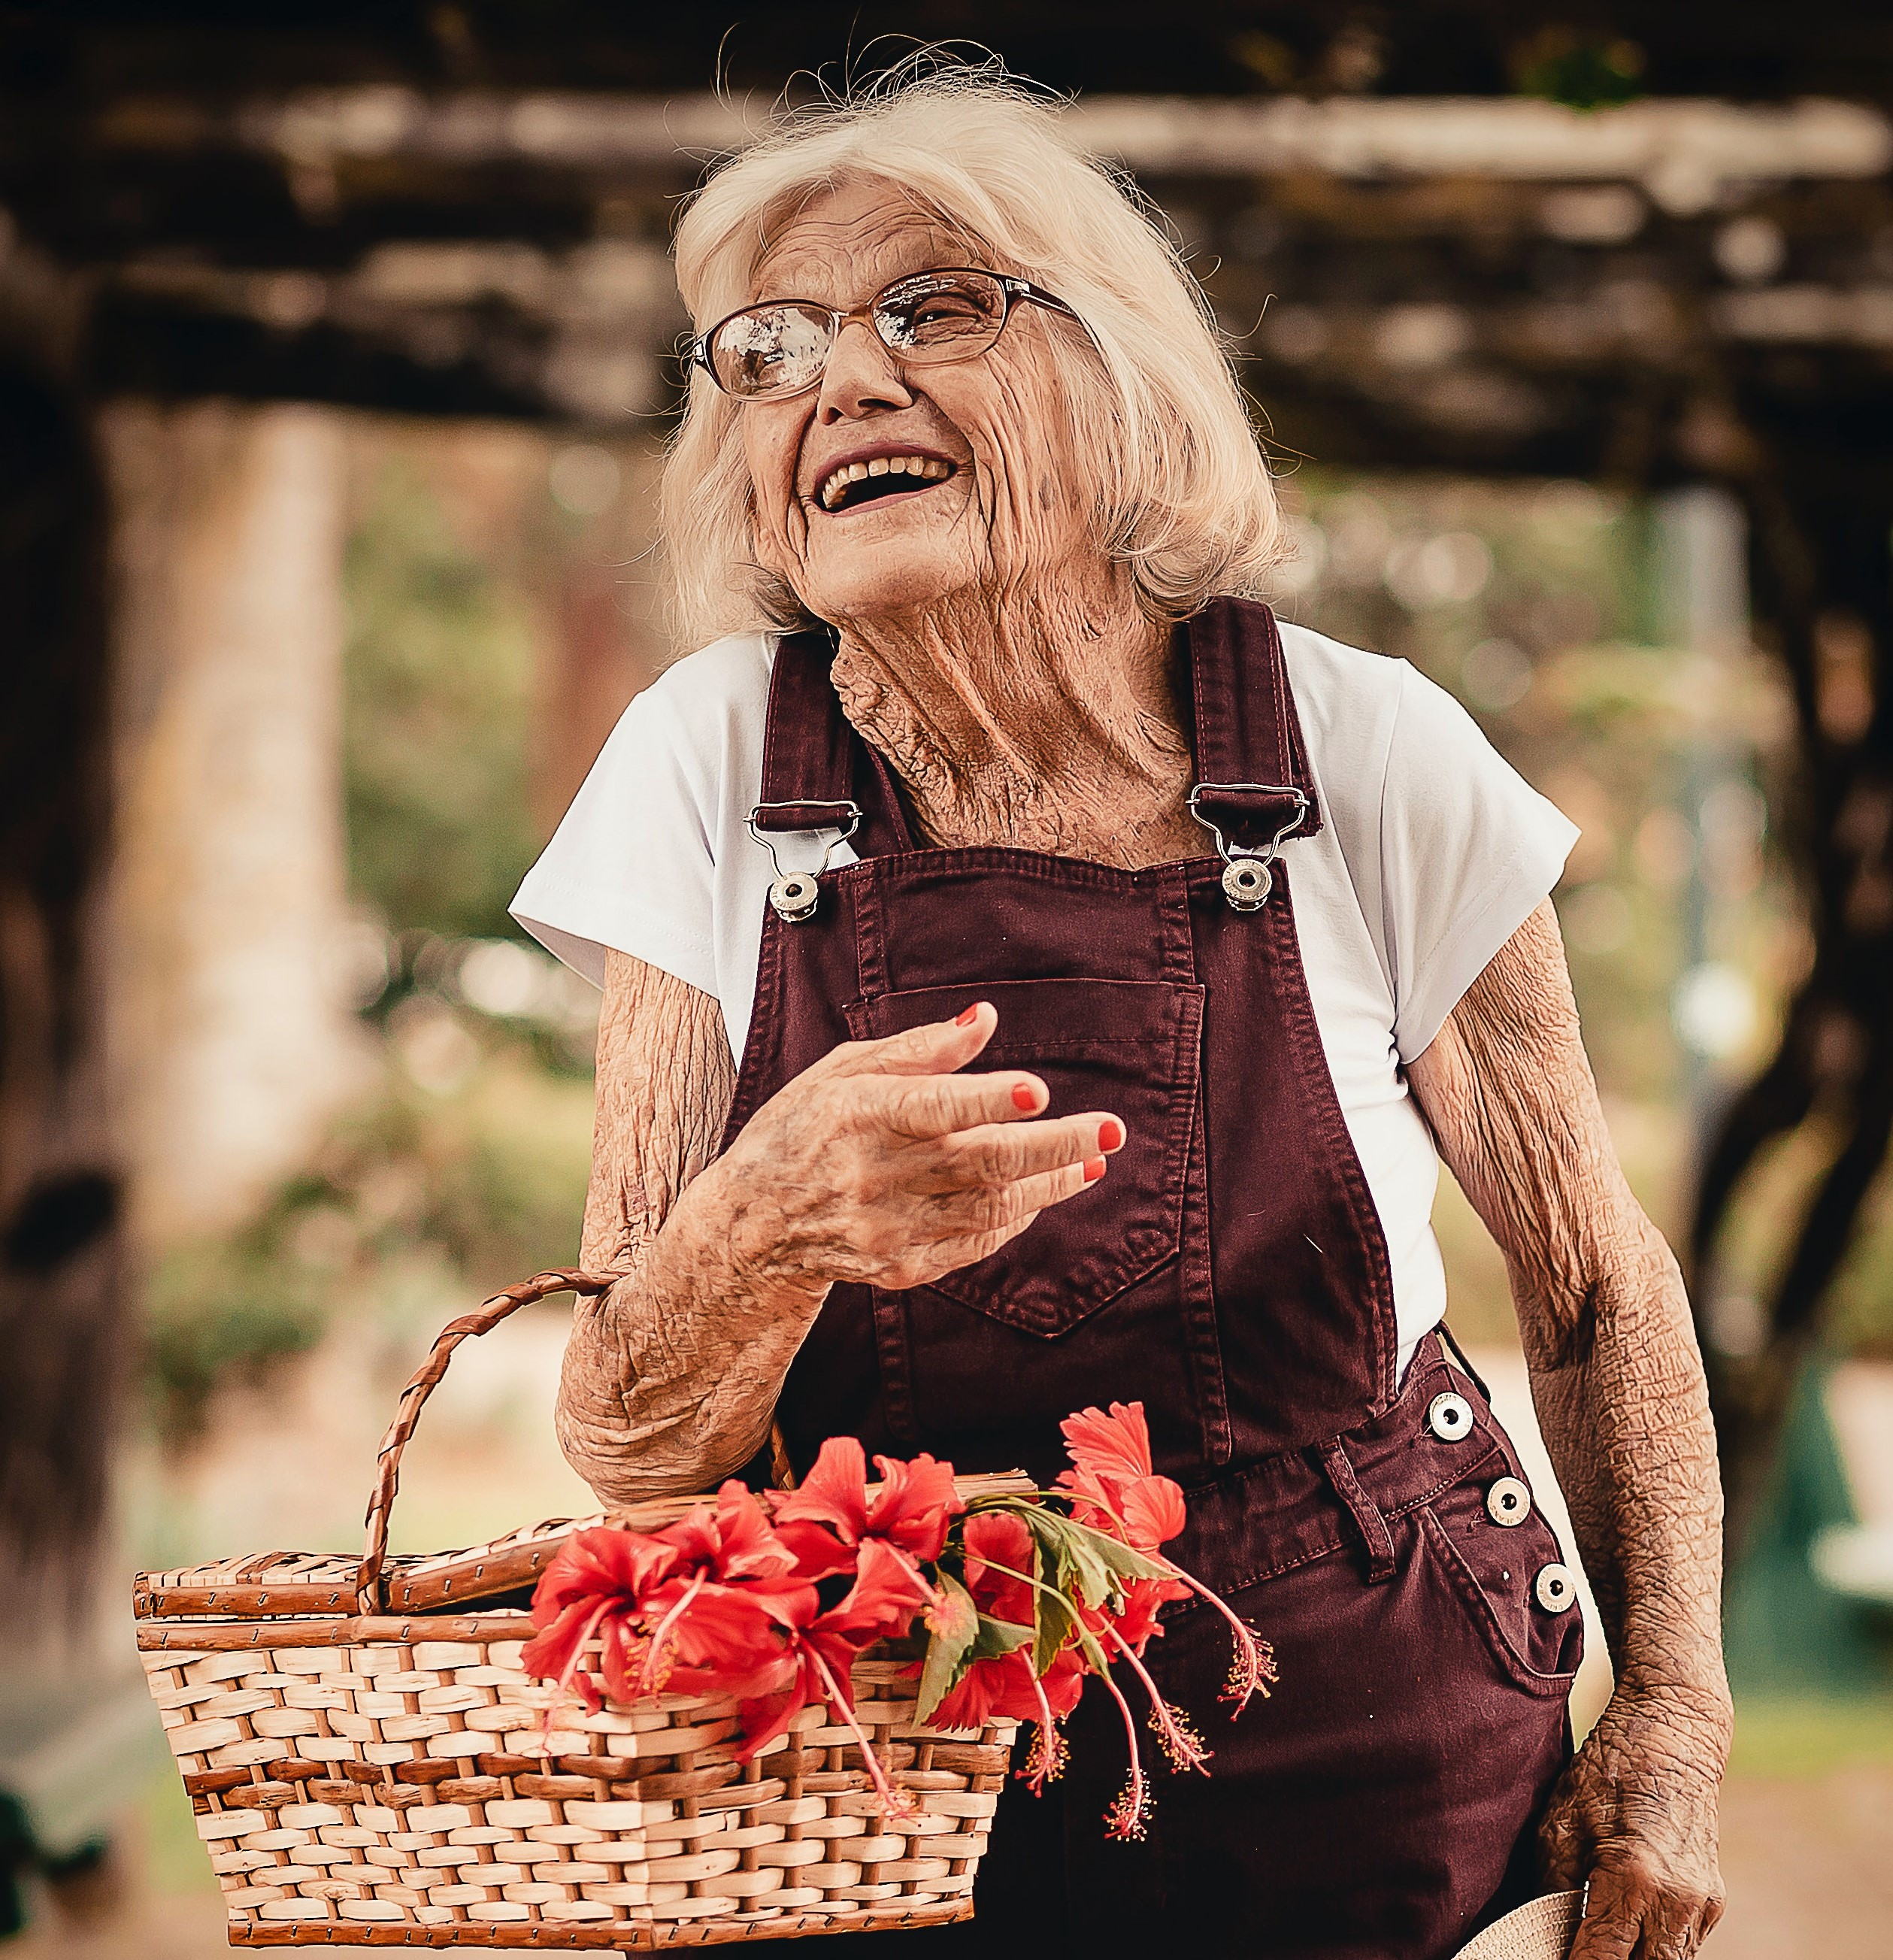 Lady smiling holding basket flowers